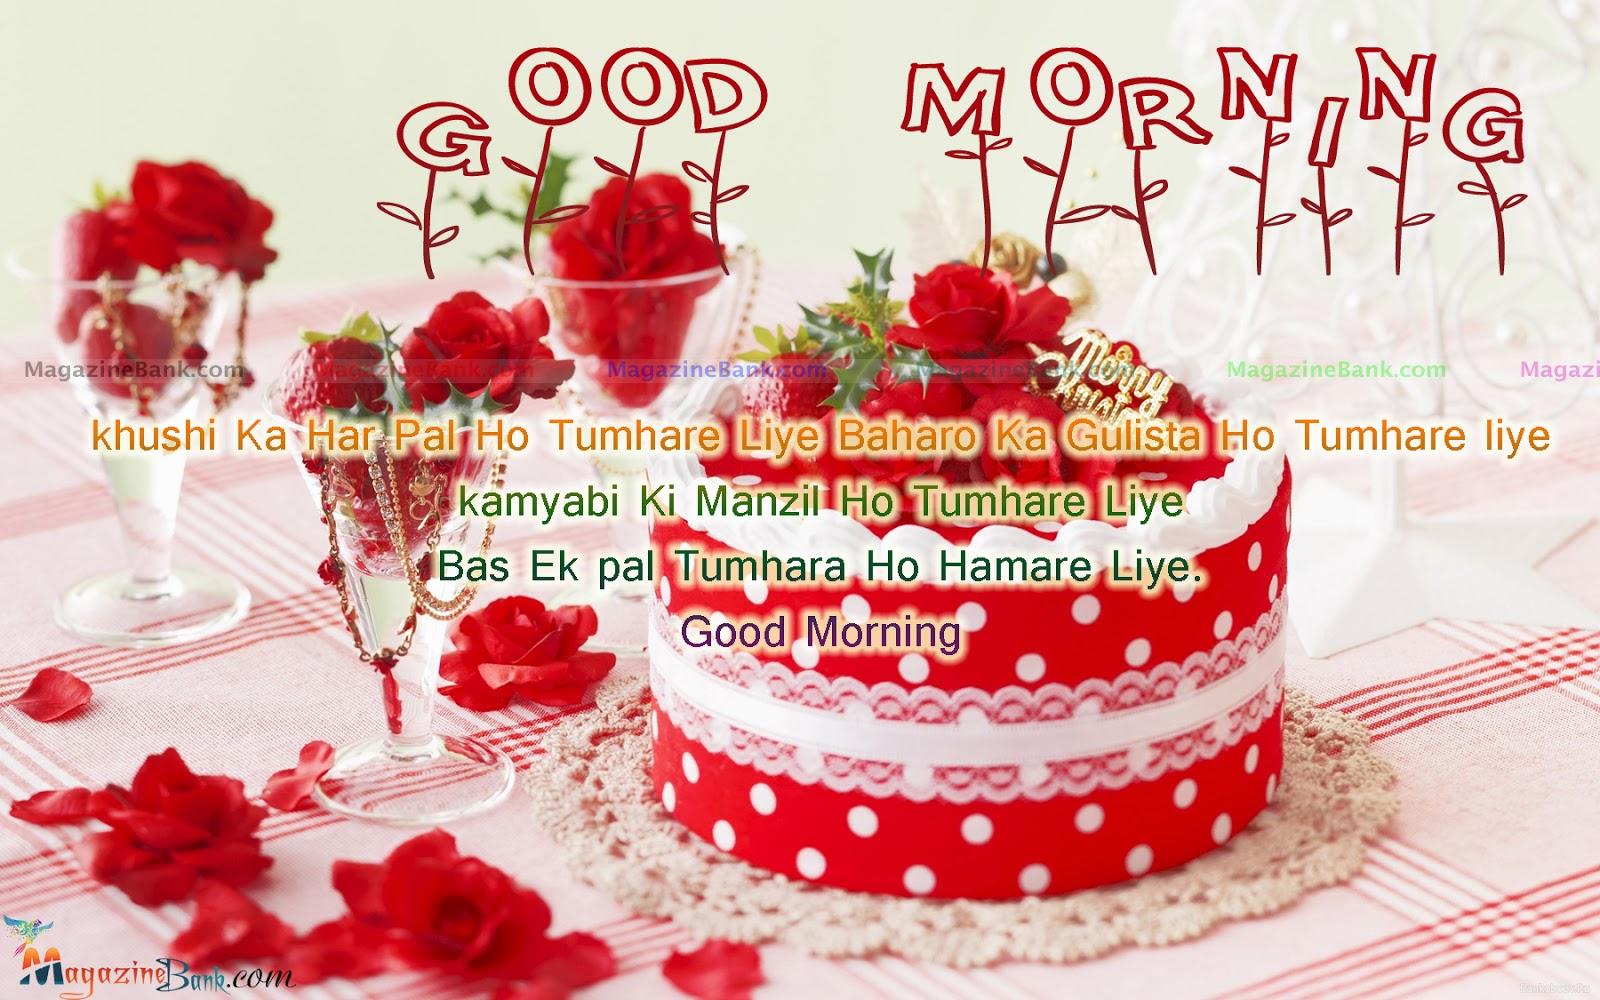 Good Morning Winter Sms : Good morning quotes for friends quotesgram